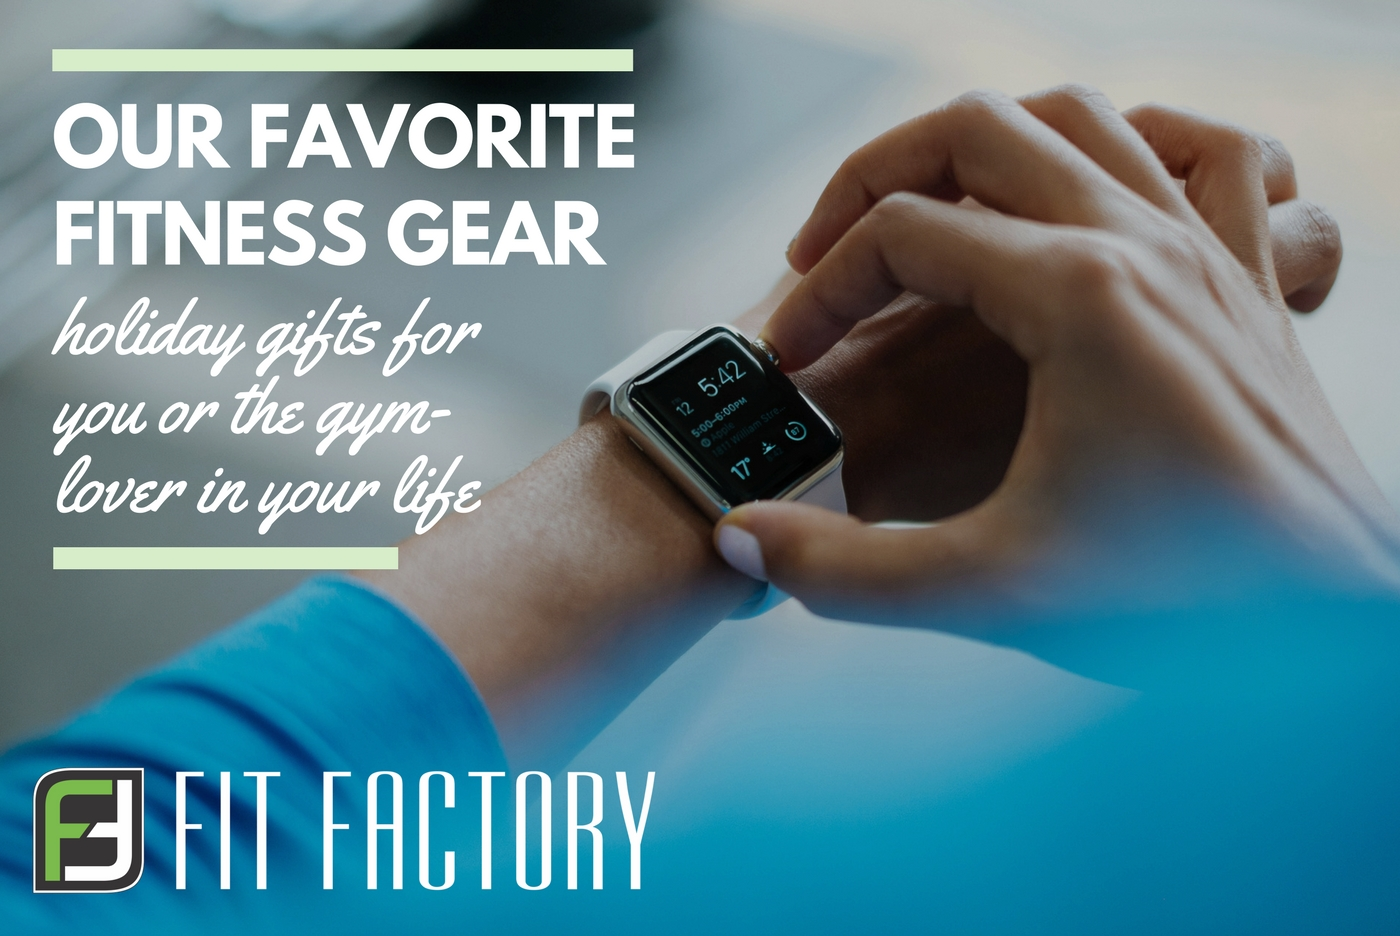 Our Favorite Fitness Gear: Gifts for You or the Gym-Lover in Your Life